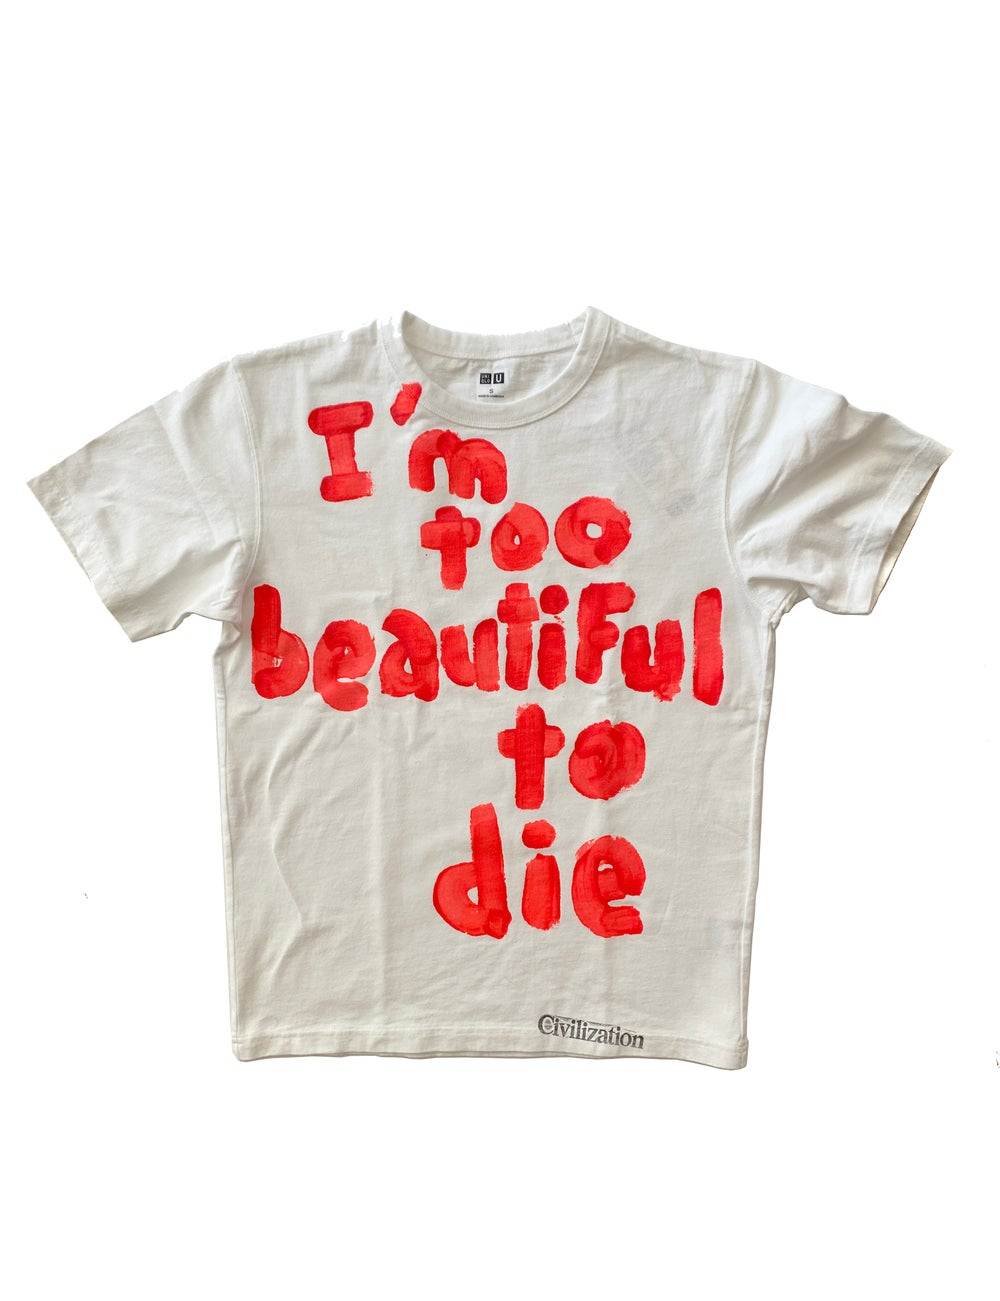 Image of T-SHIRT: I'M TOO BEAUTIFUL TO DIE